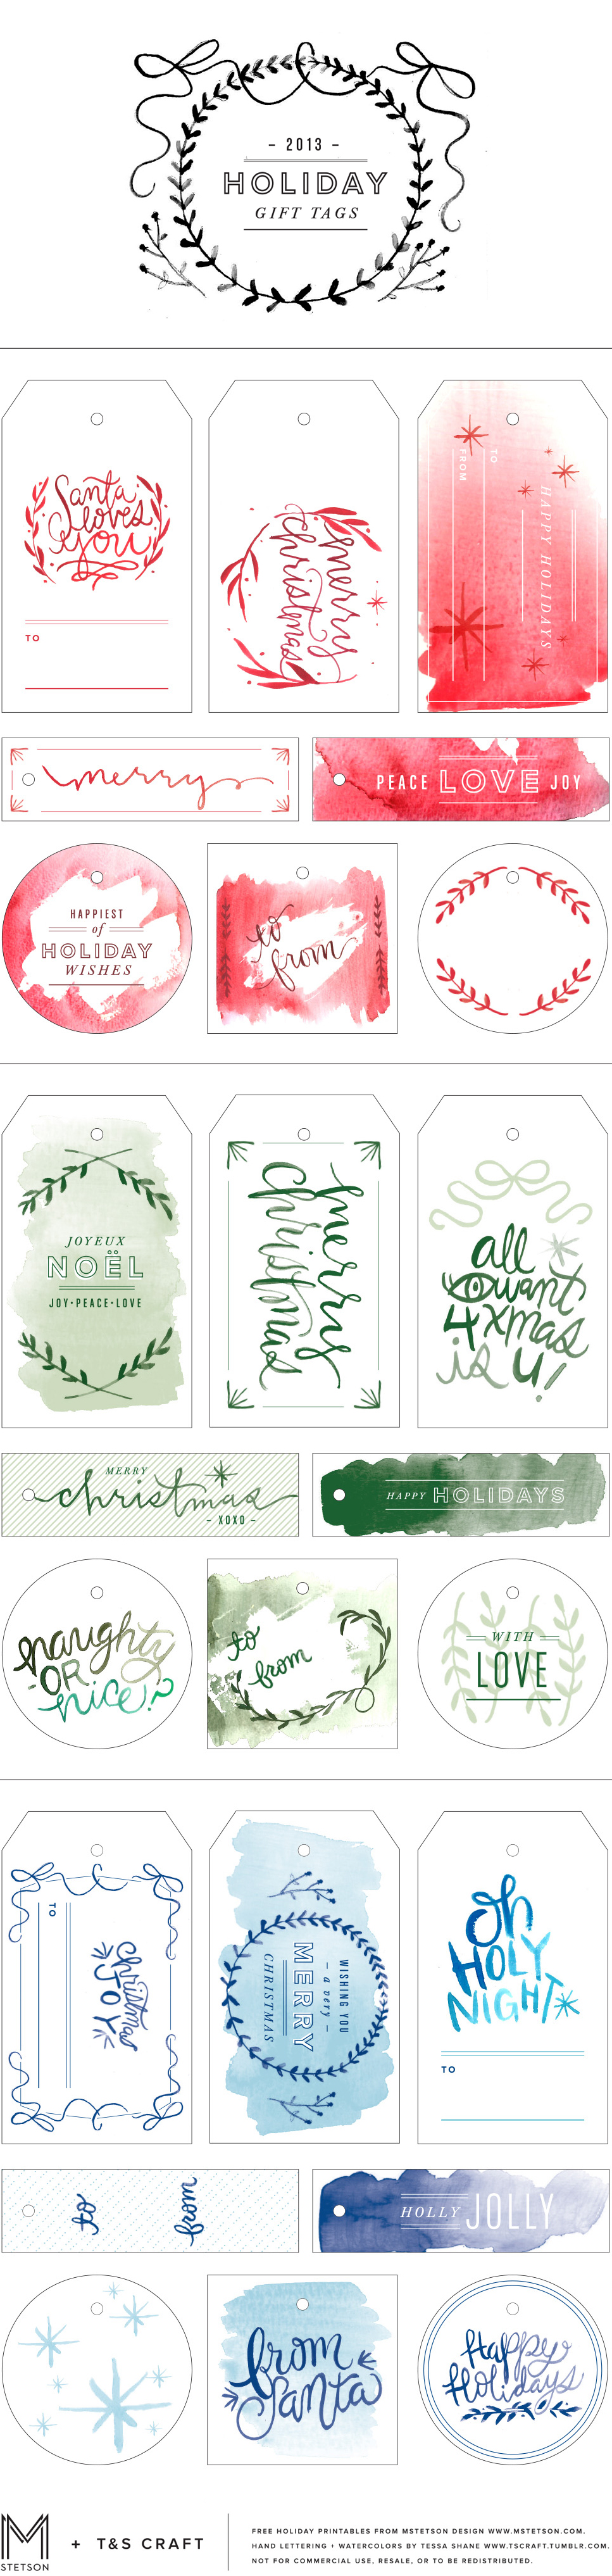 picture regarding Free Printable Gift Tags Christmas called watercolor getaway reward tag printables MStetson Design and style